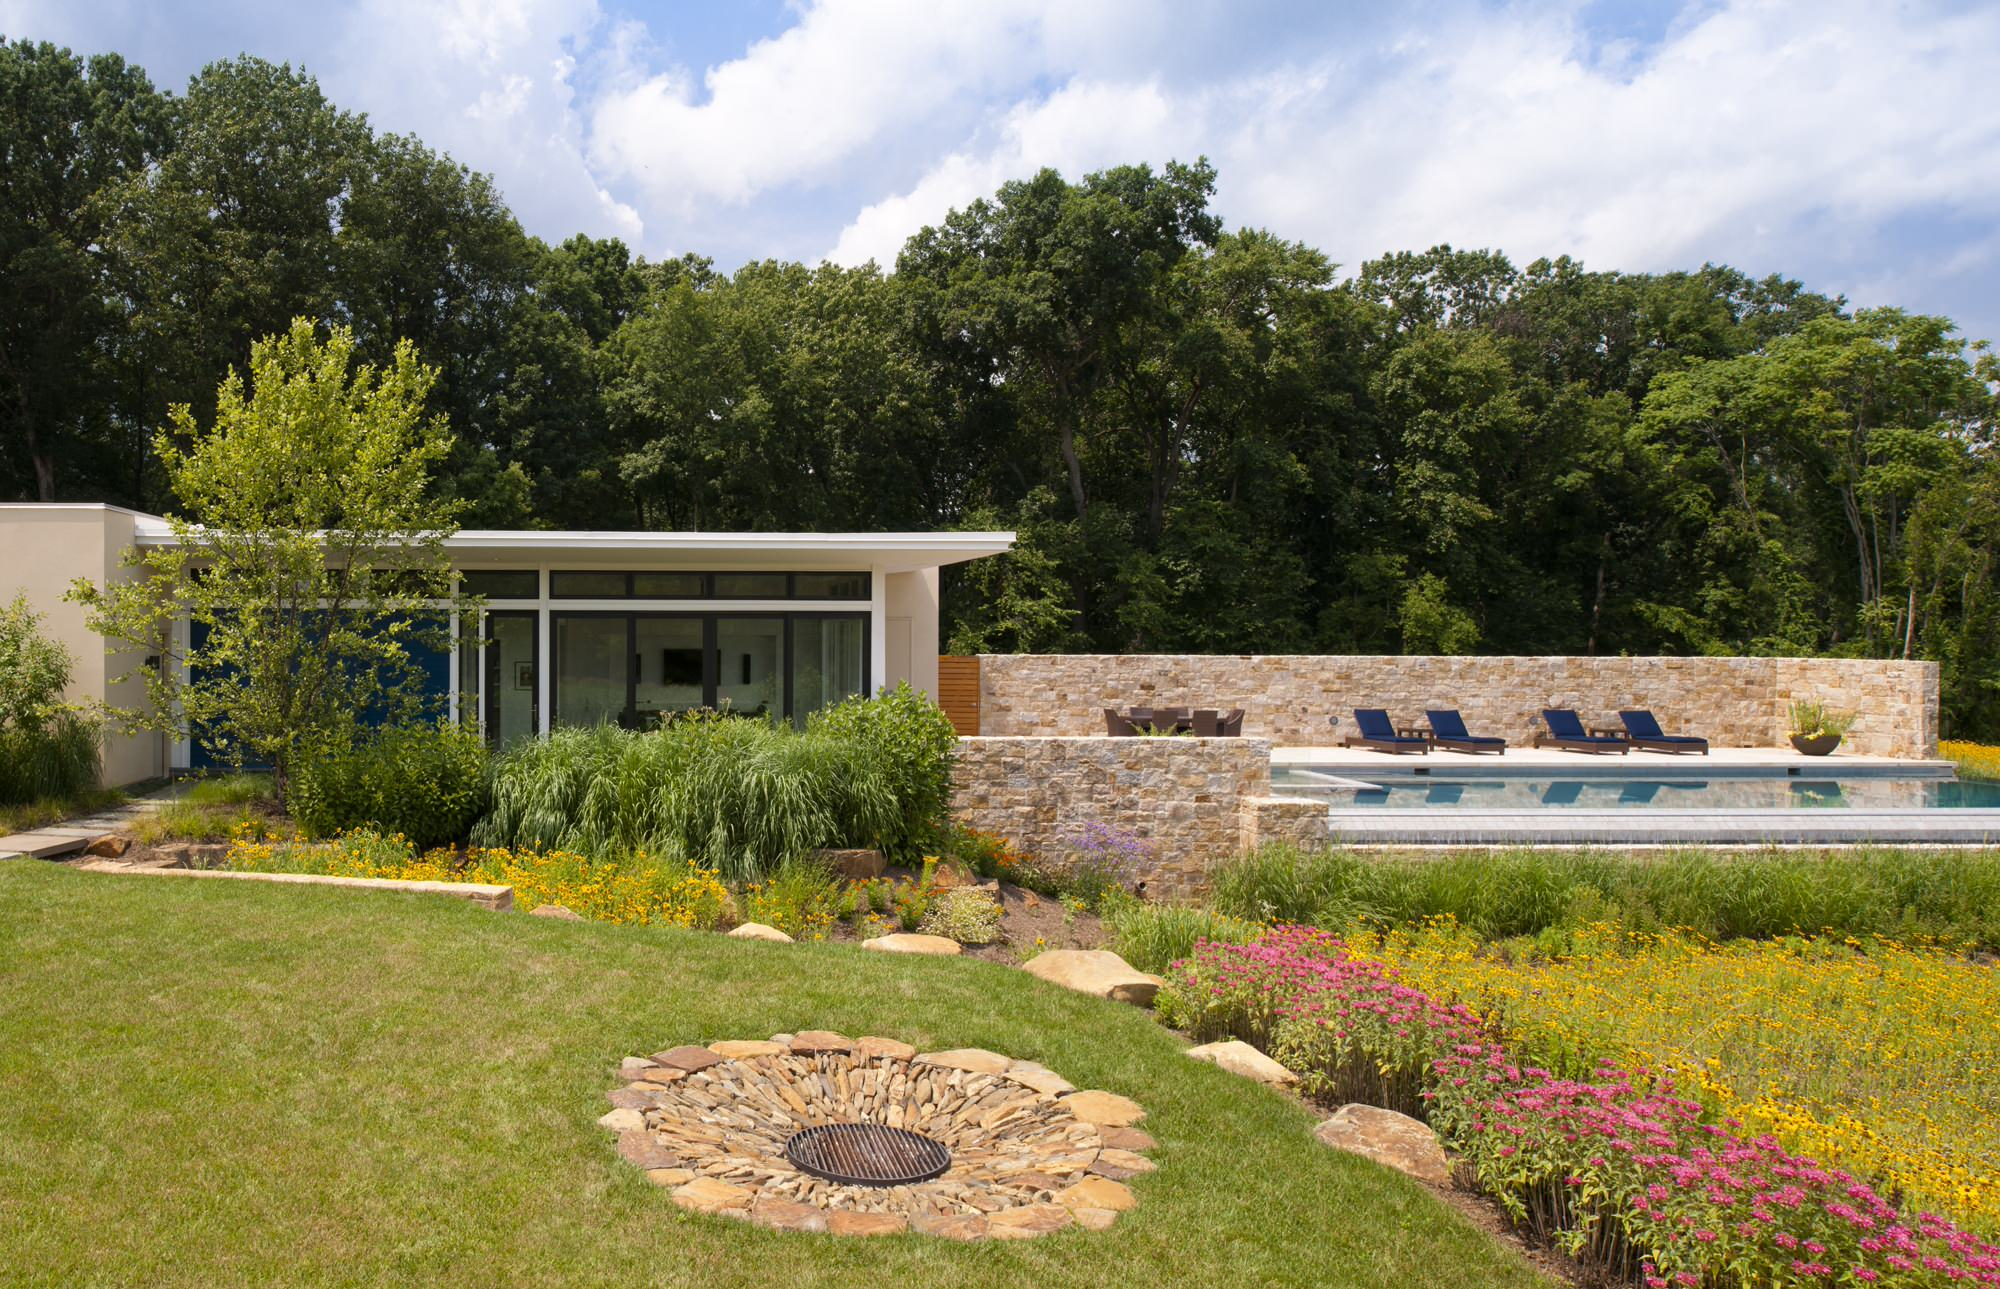 16 Delightful Modern Landscape Ideas That Will Update Your ...